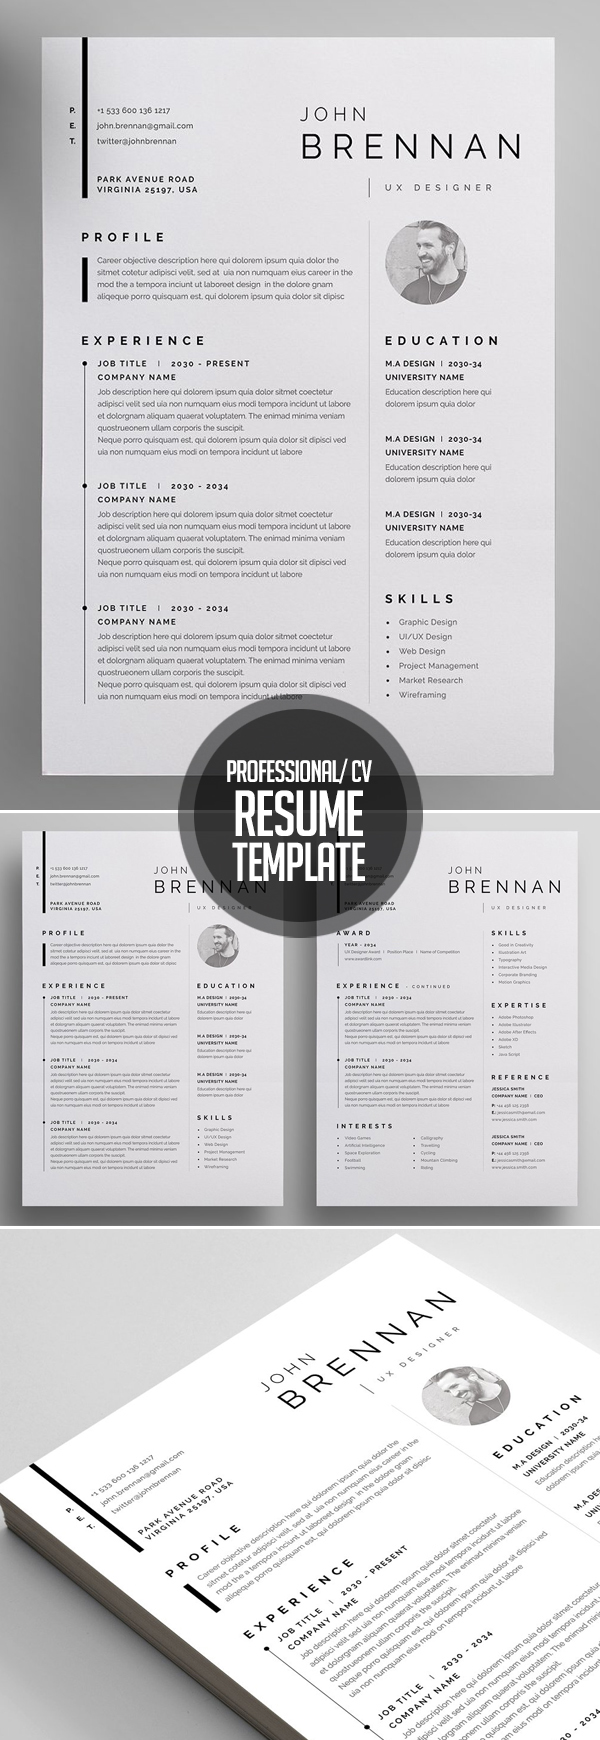 Clean, Professional Resume and Letterhead Template